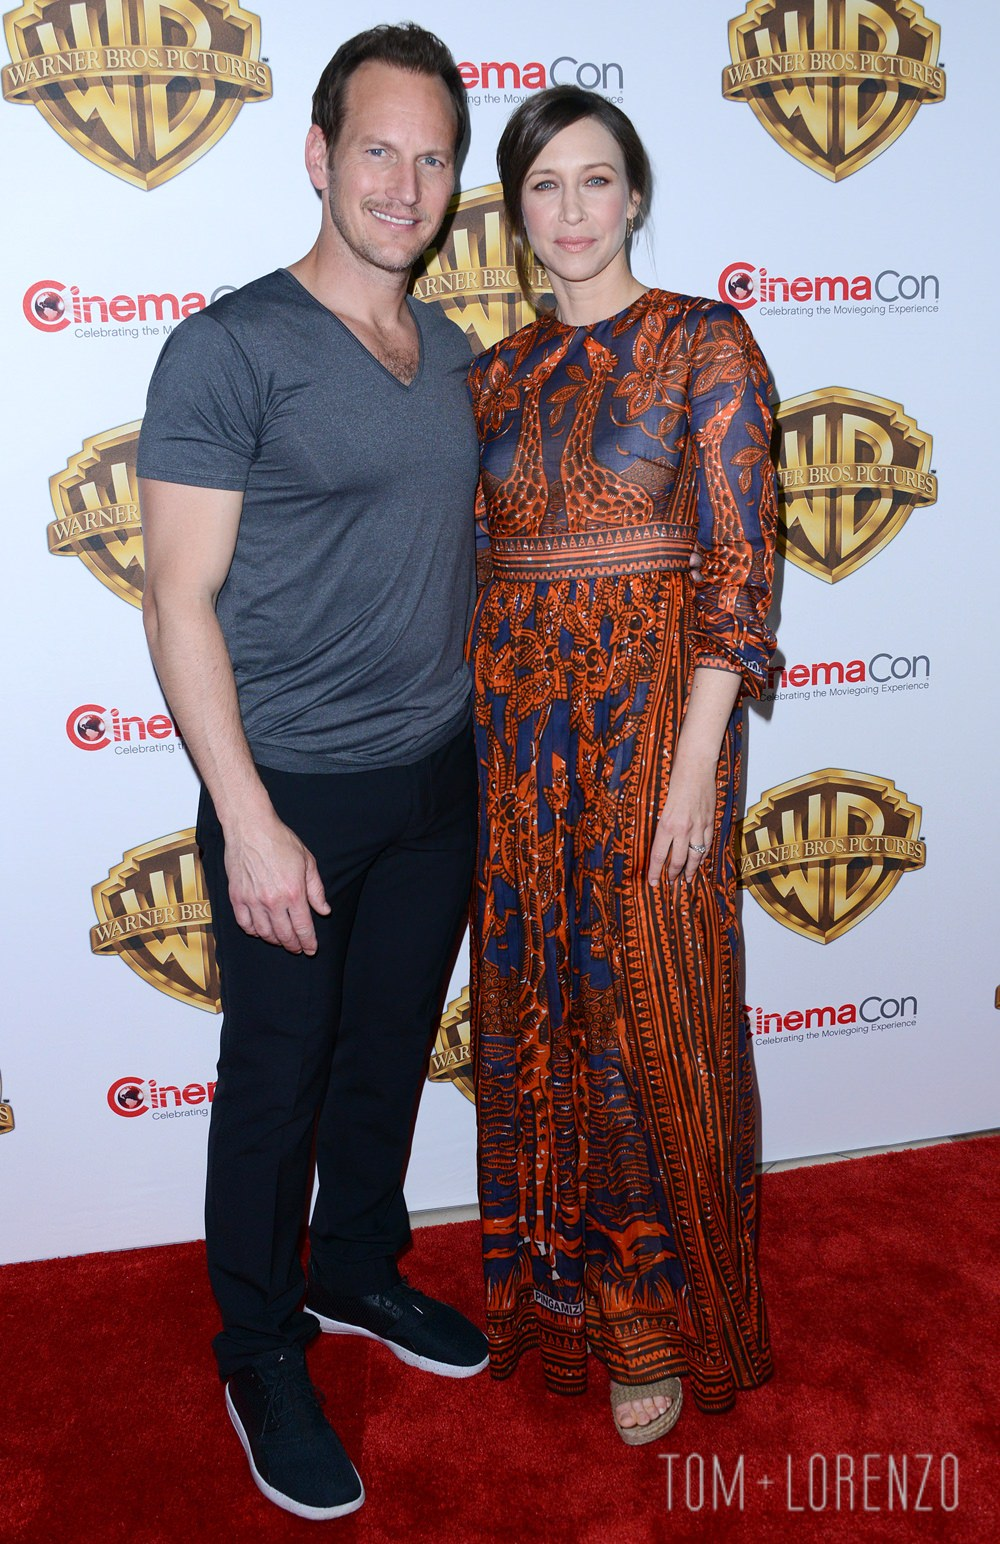 52022106 Celebrities attend the Warner Bros. presentation held at the Caesars Palace in Las Vegas, Nevada on April 12, 2016. Celebrities attend the Warner Bros. presentation held at the Caesars Palace in Las Vegas, Nevada on April 12, 2016. Pictured: Vera Farmiga, Patrick Wilson FameFlynet, Inc - Beverly Hills, CA, USA - +1 (310) 505-9876 RESTRICTIONS APPLY: NO FRANCE